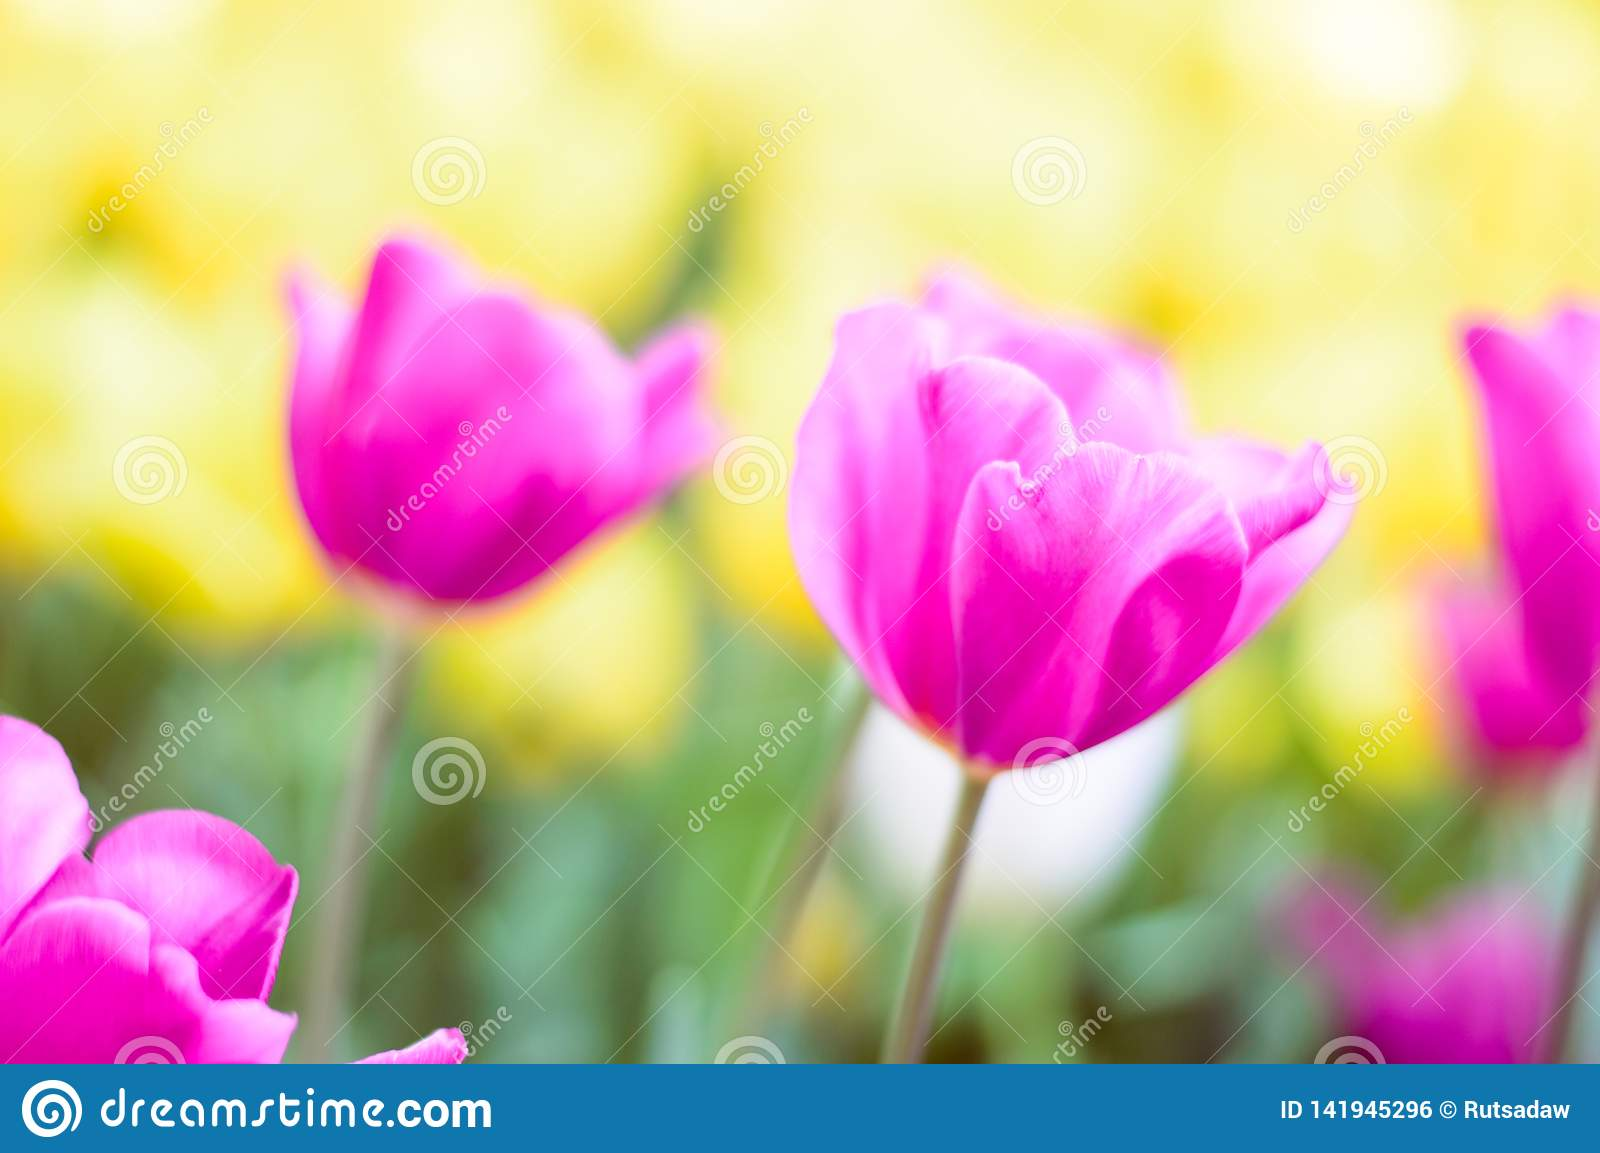 Pink tulips bloom in the garden